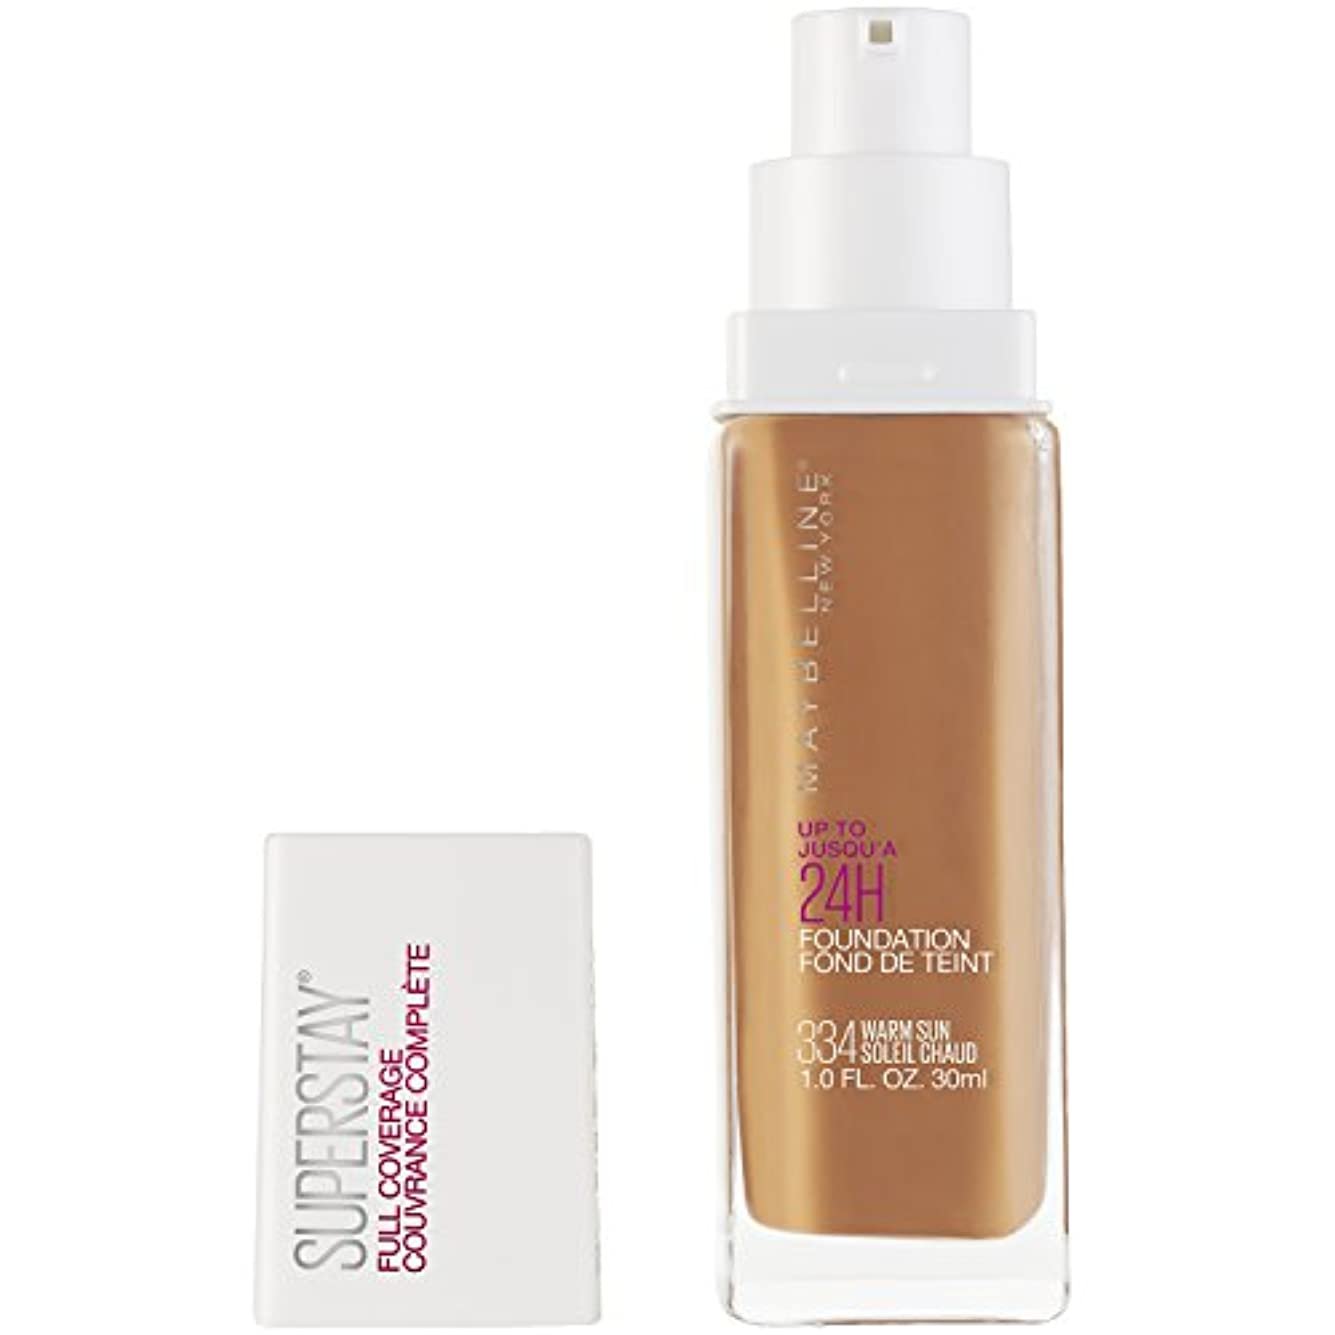 敬な狐苦味MAYBELLINE Superstay Full Coverage Foundation - Warm Sun 334 (並行輸入品)